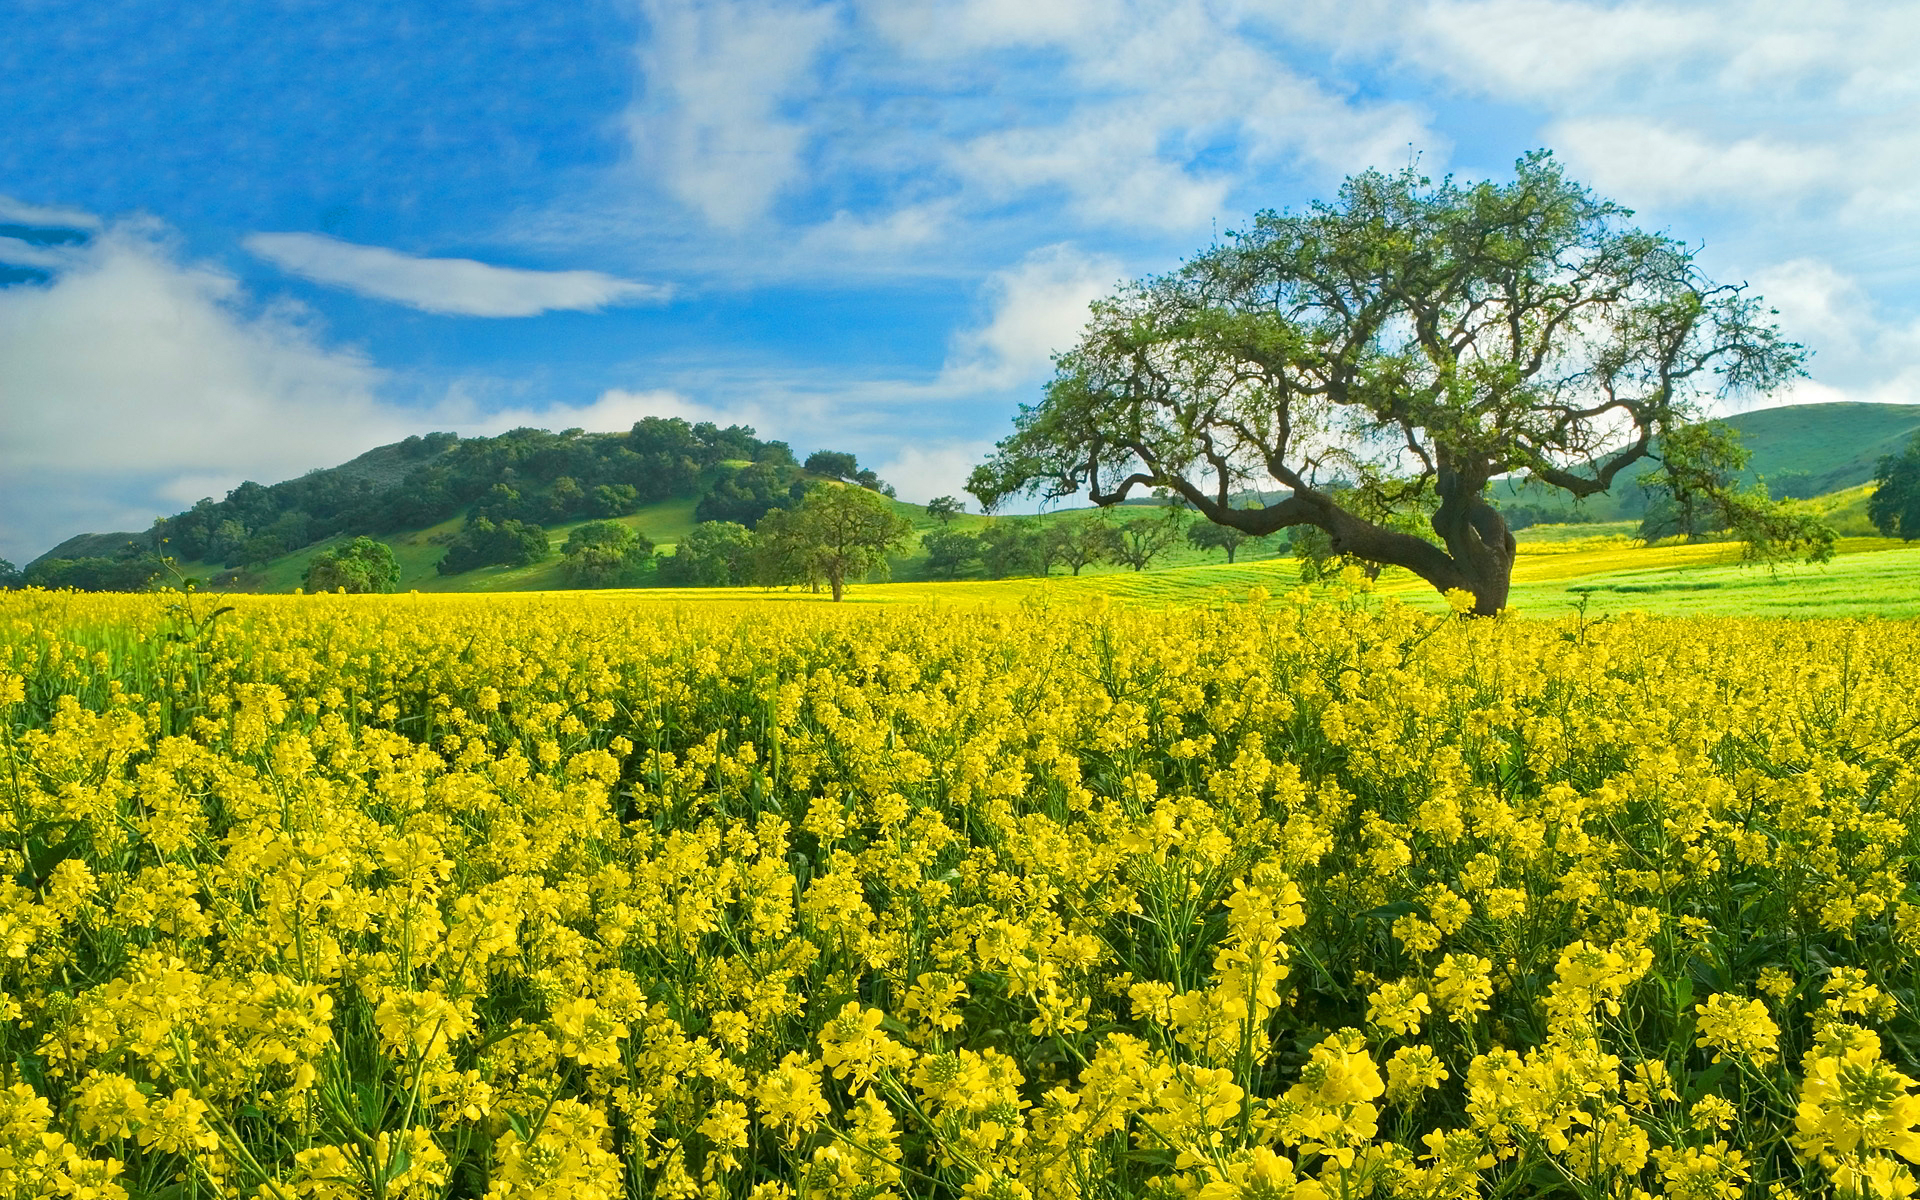 yellow field flowers